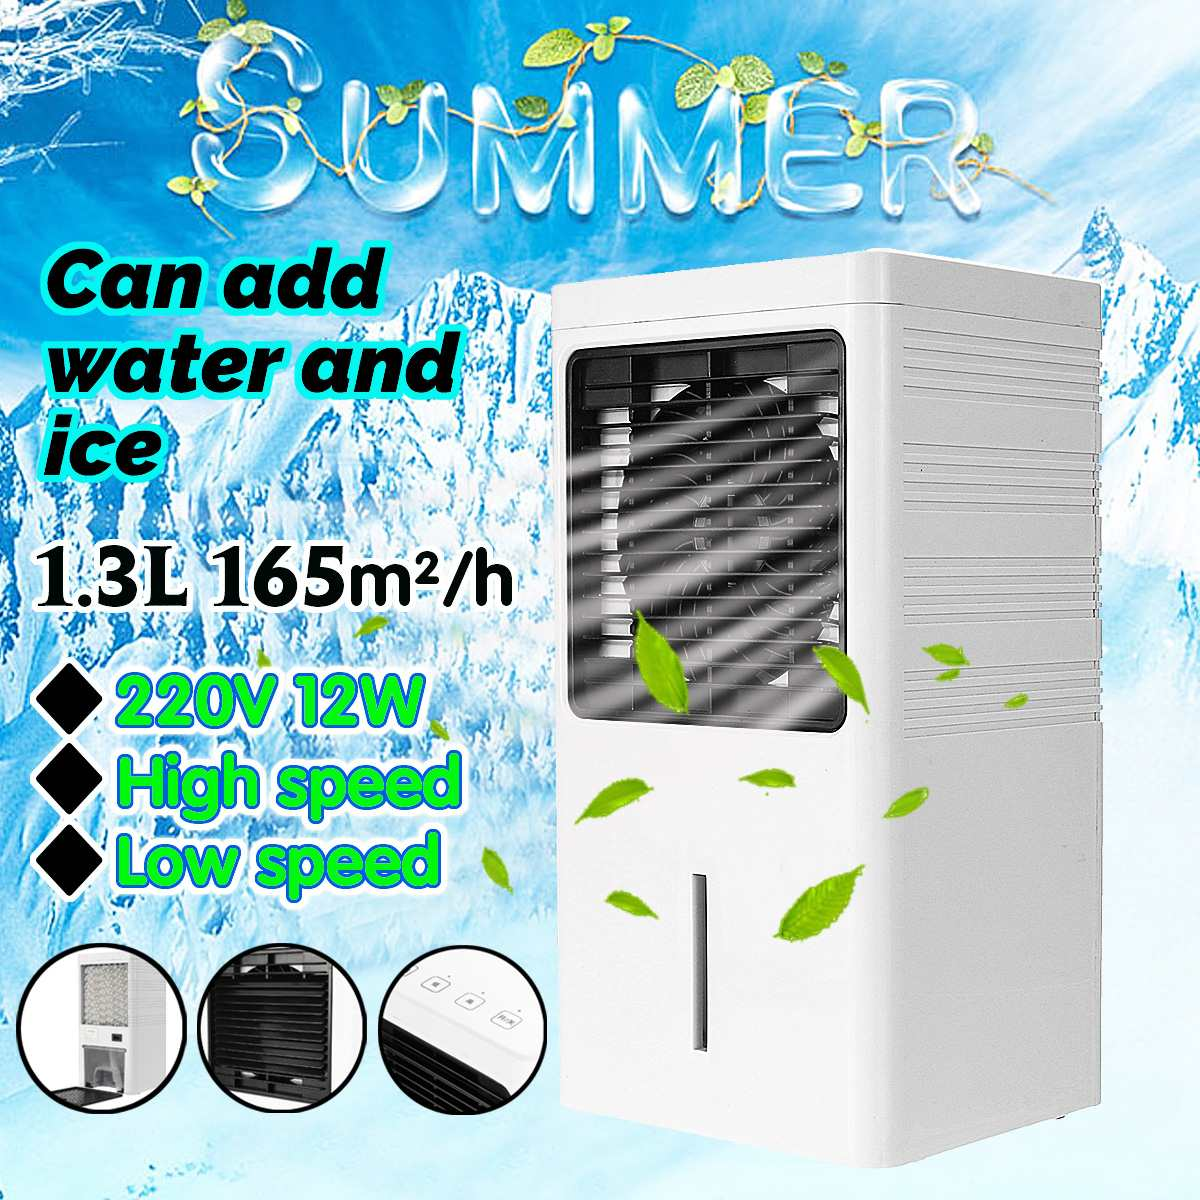 Hot 220V Mini Portable Air Conditioner Humidifier Cooler Cooling System Desktop Air Cooling Fan Air Cooler Fan for Office HomeHot 220V Mini Portable Air Conditioner Humidifier Cooler Cooling System Desktop Air Cooling Fan Air Cooler Fan for Office Home